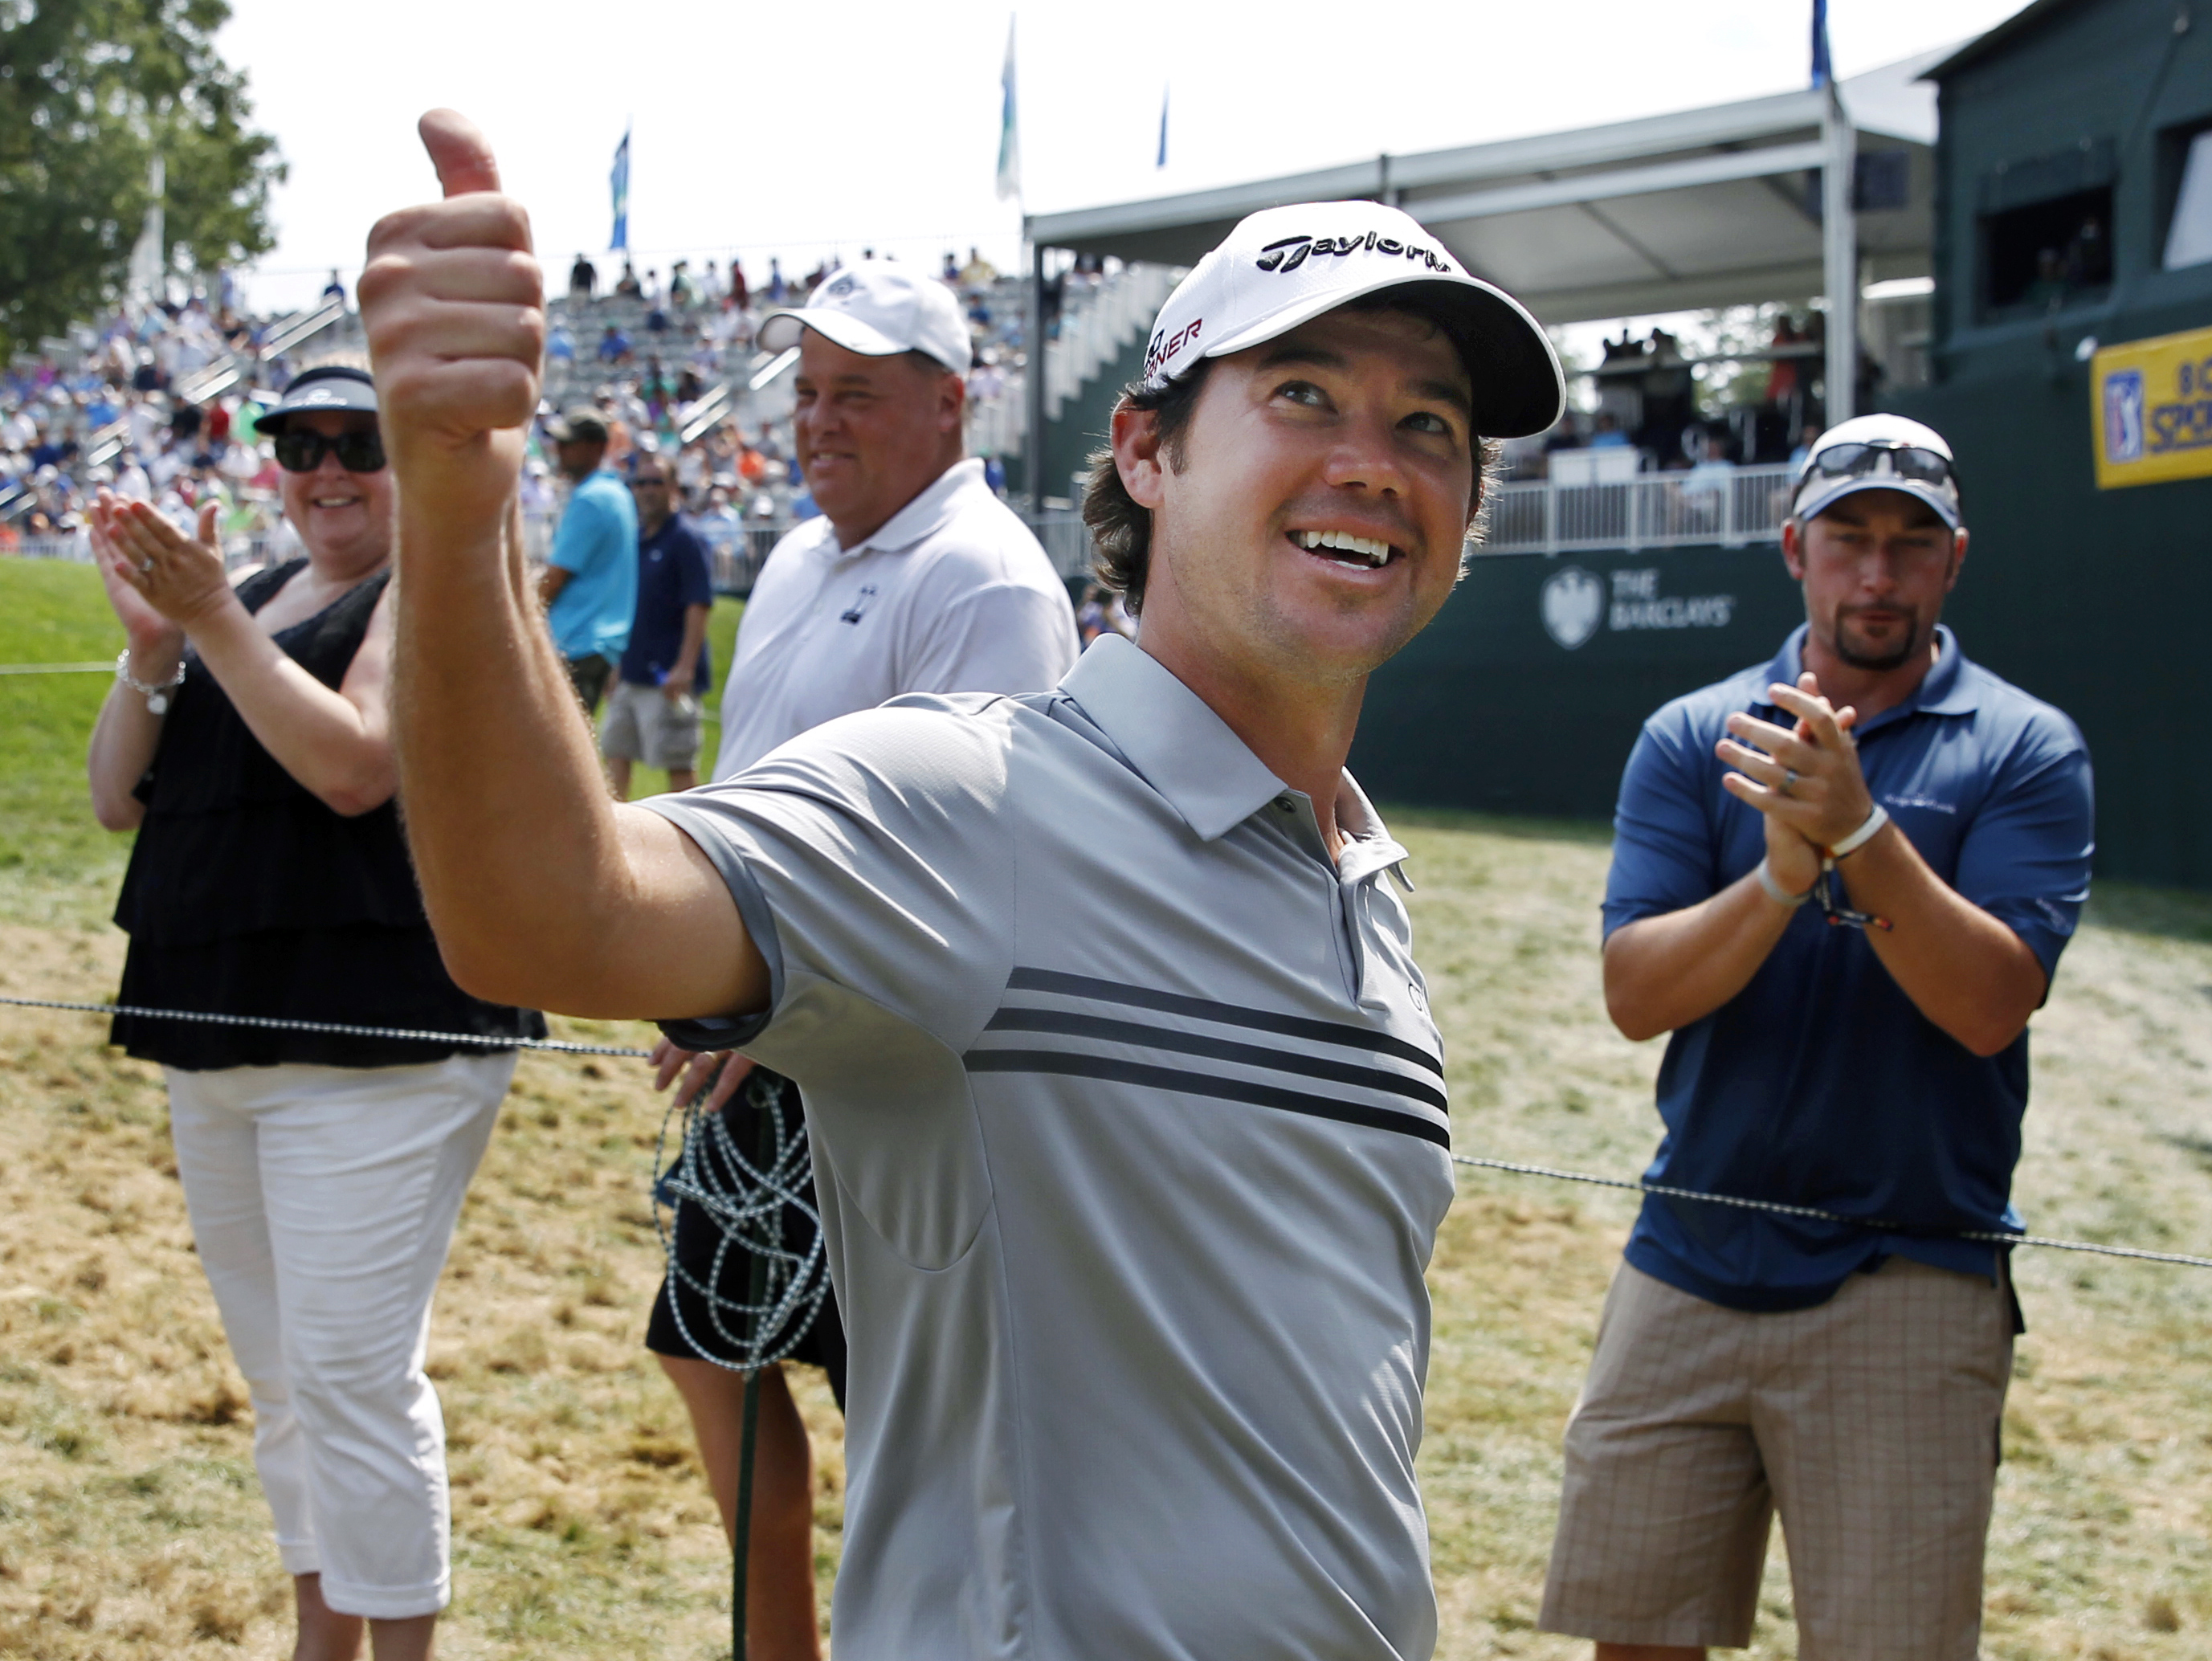 Brian Harman gives thumbs-up to a cheering gallery as he walks off the 18th hole after finishing with two holes-in-one in the final round of play at The Barclays golf tournament Sunday, Aug. 30, 2015, in Edison, N.J. Harman hit a hole-in-one on the third